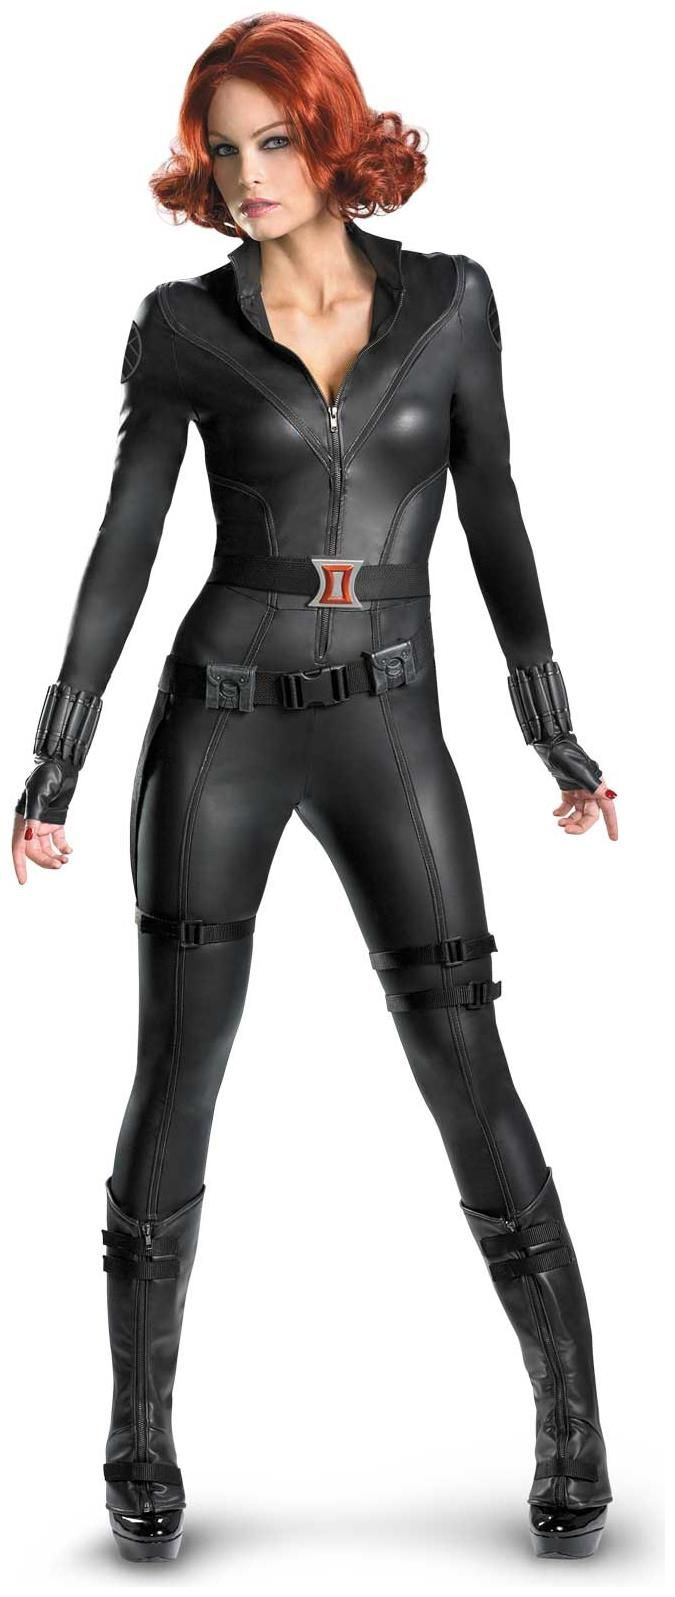 PartyBell.com - The Avengers Black Widow Elite #AdultCostume #Popularhalloweencostume